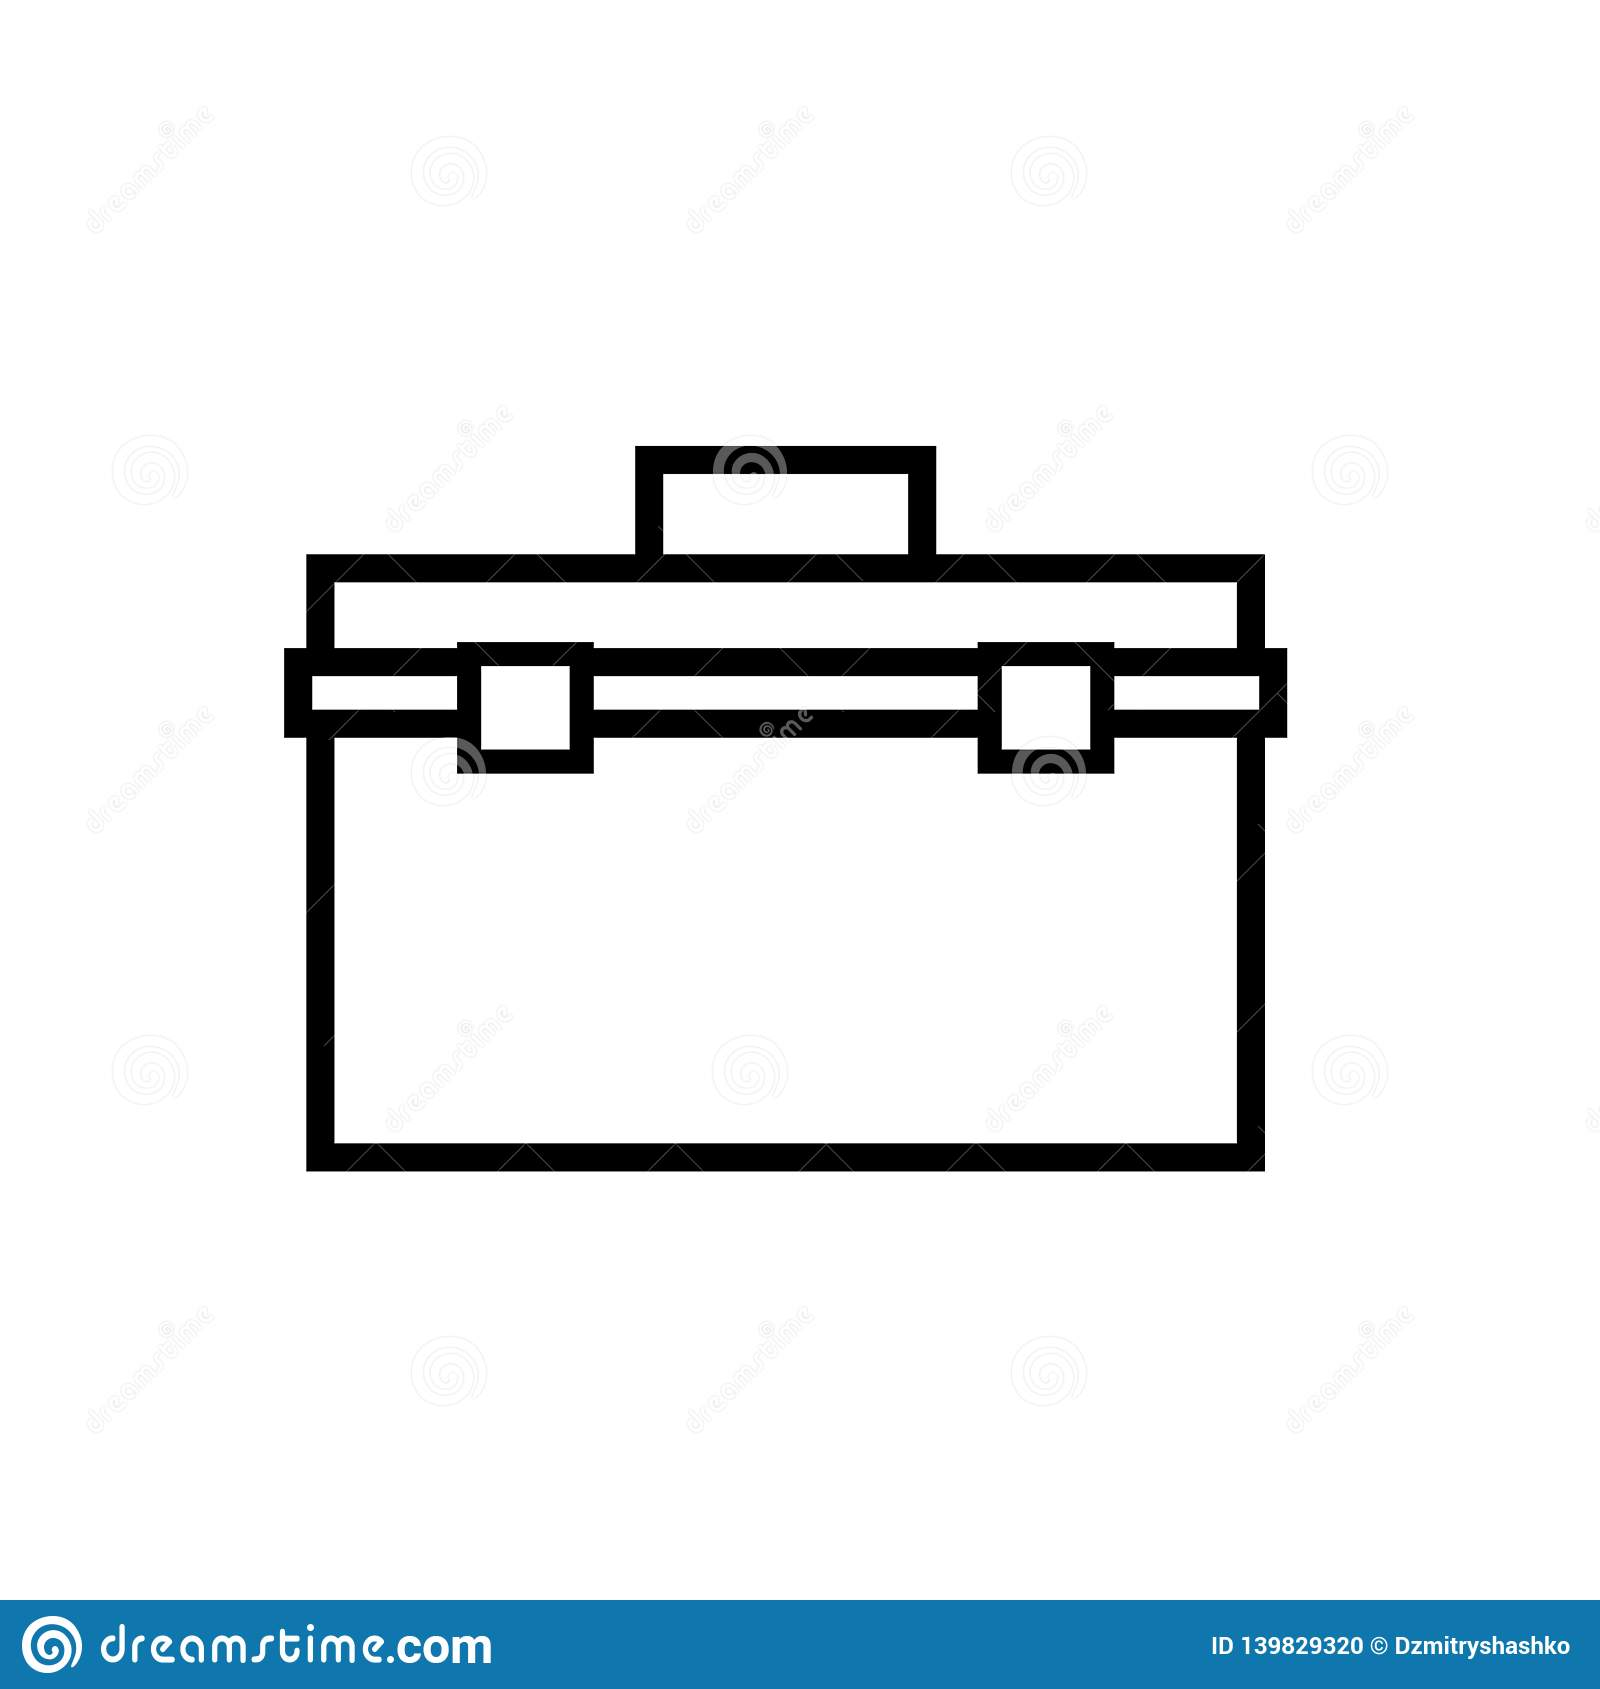 hight resolution of toolbox outline icon clipart image isolated on white background